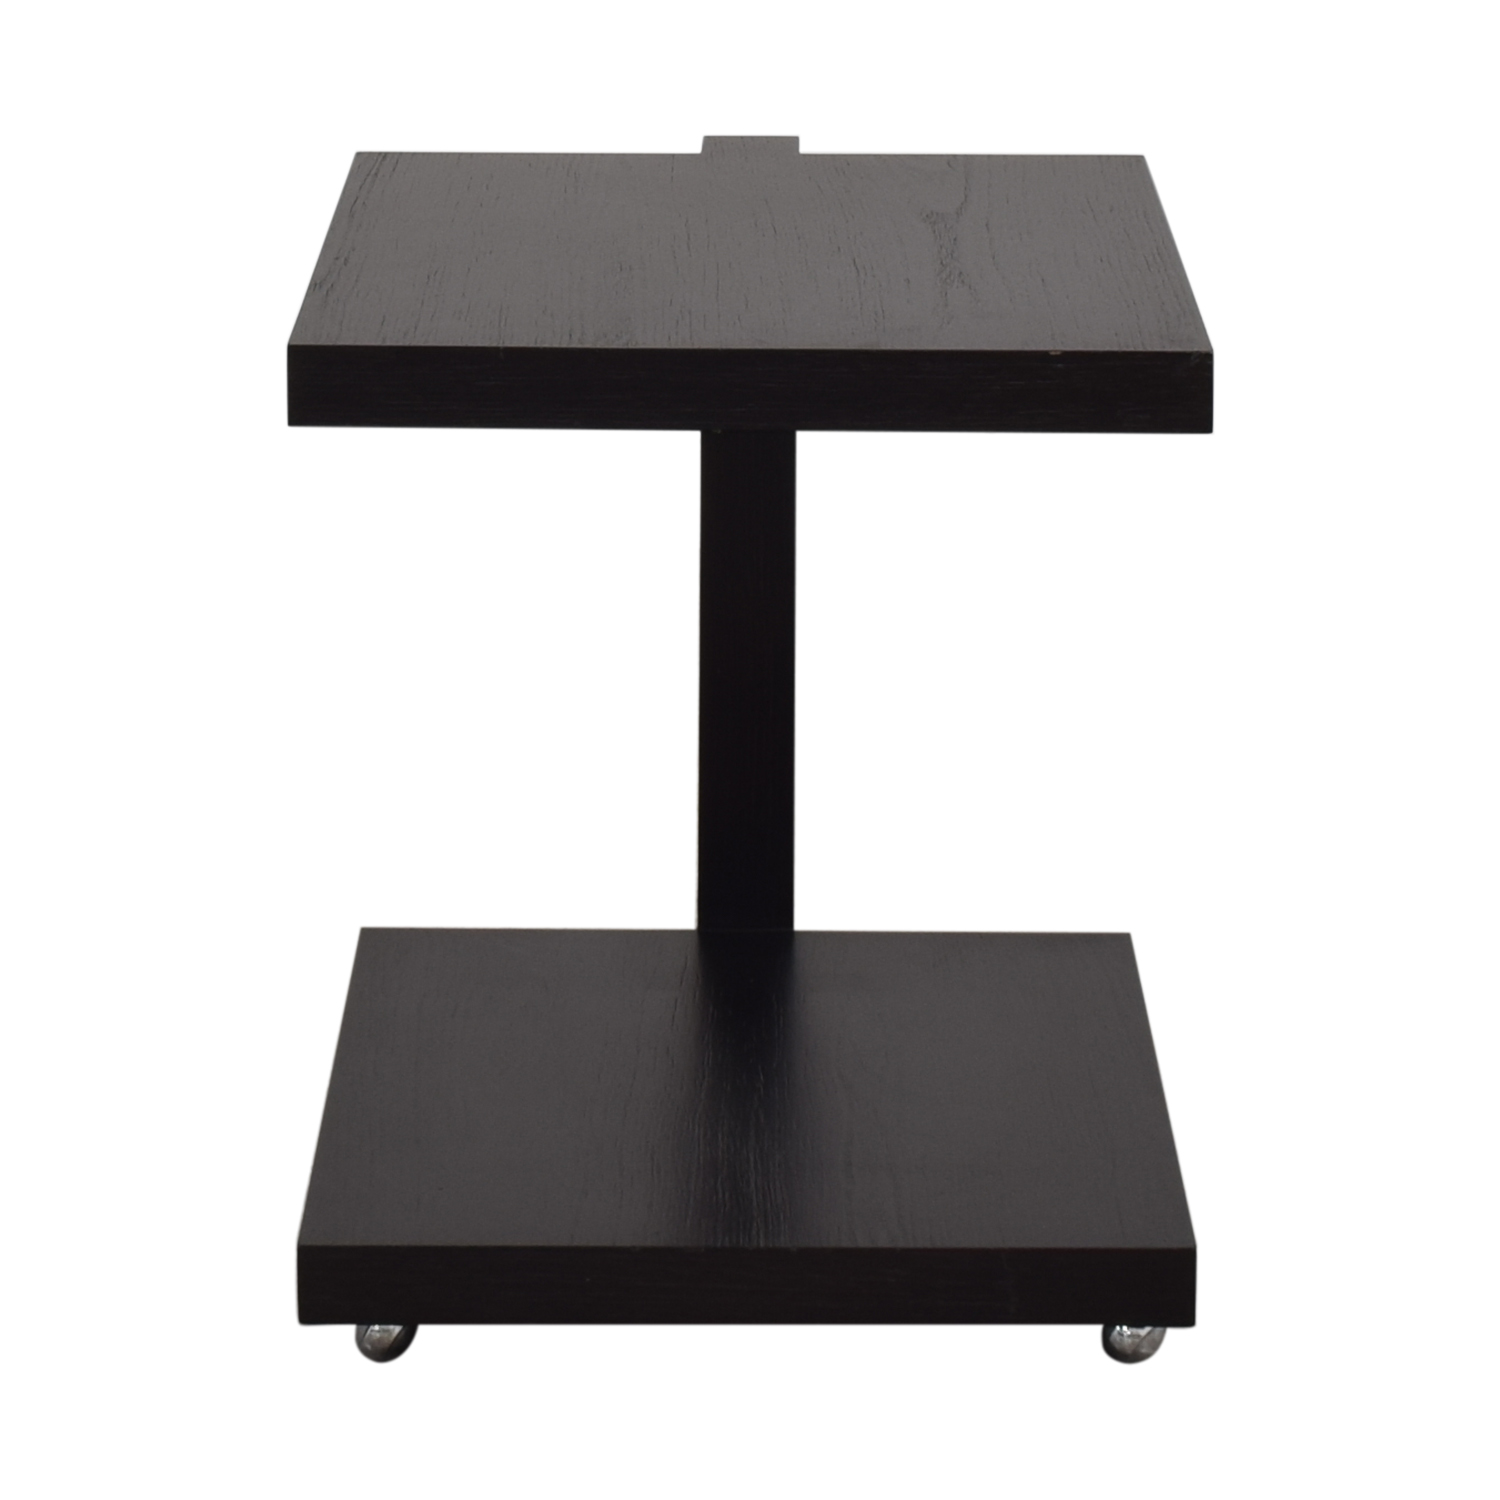 Moura Starr Moura Starr Floating End Table for sale